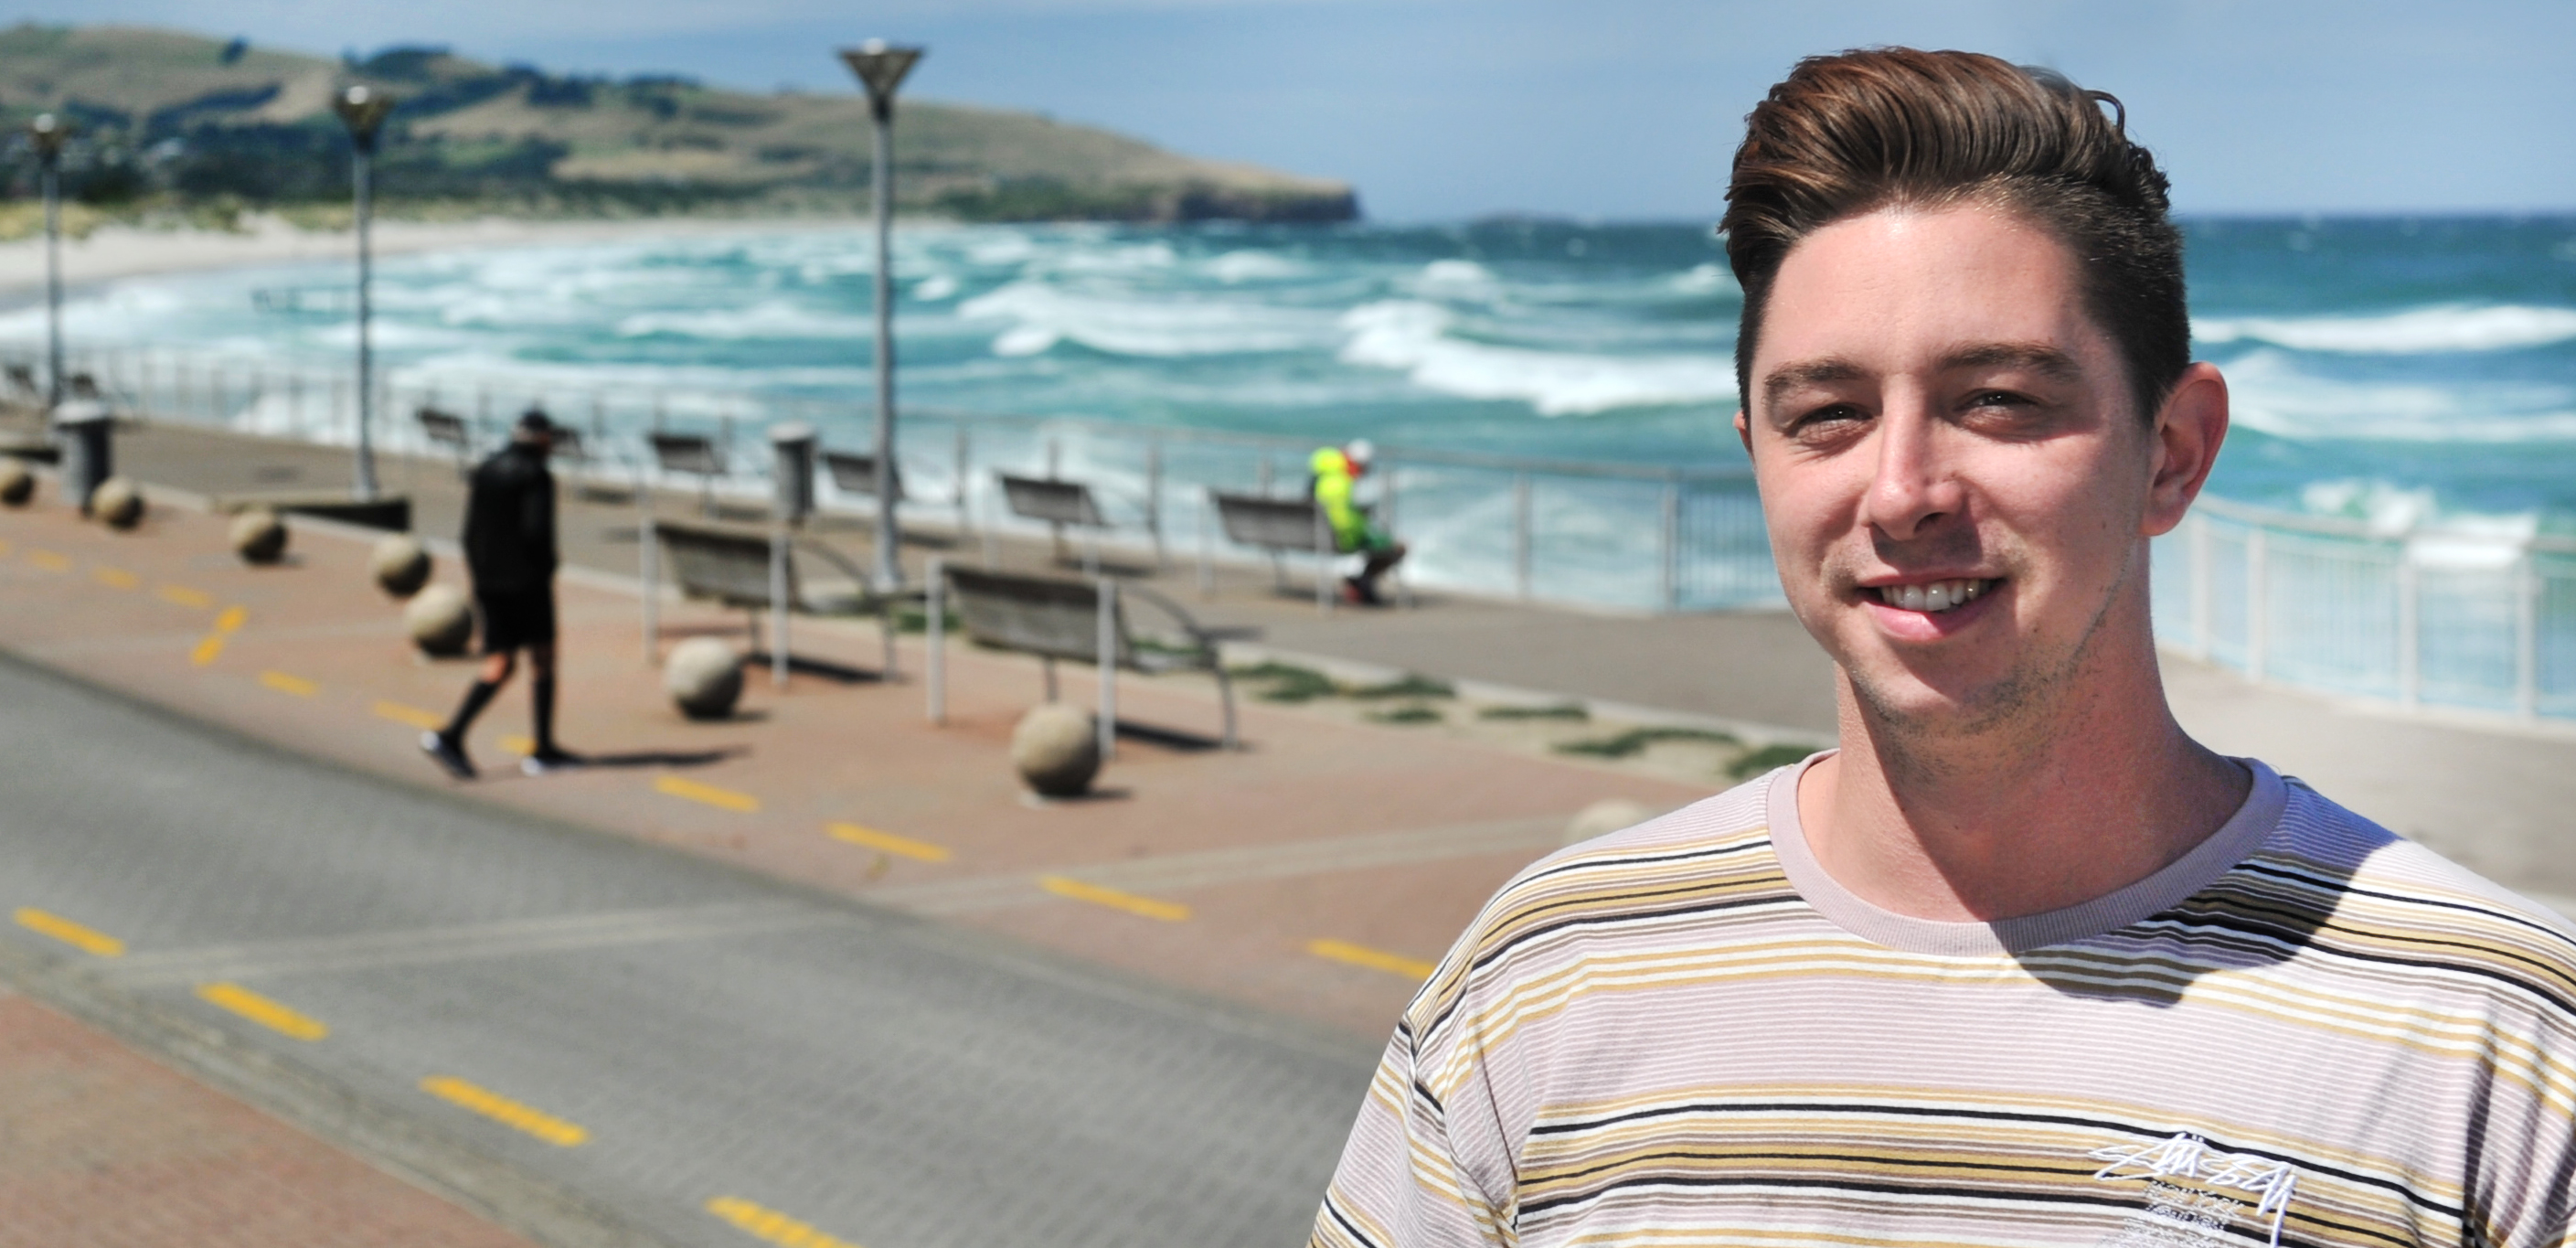 Zaibatsu Hair Art manager Cody McIlroy says pedestrianisation of the Esplanade in St Clair could...